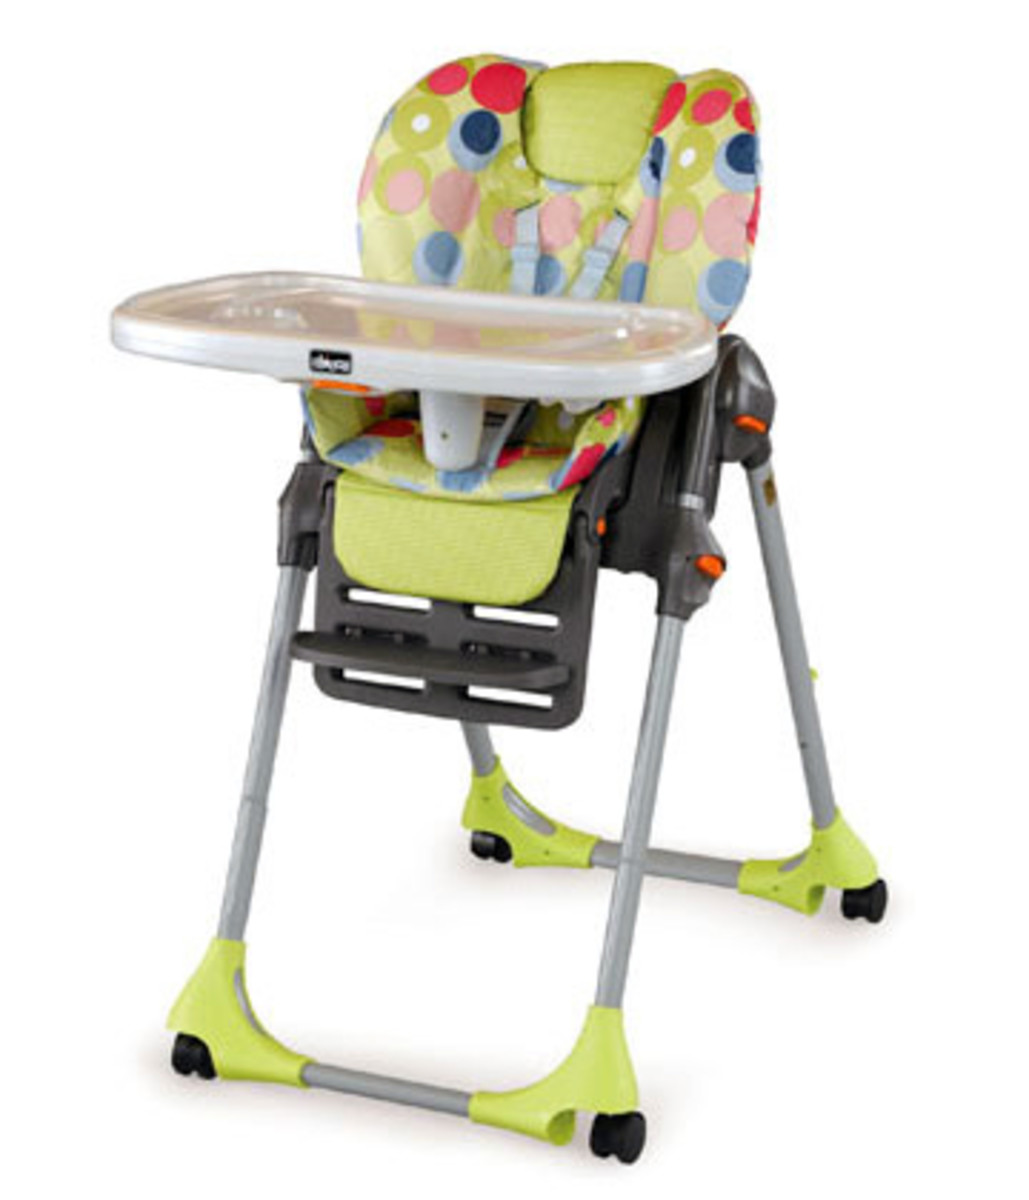 The Chicco Polly High Chair